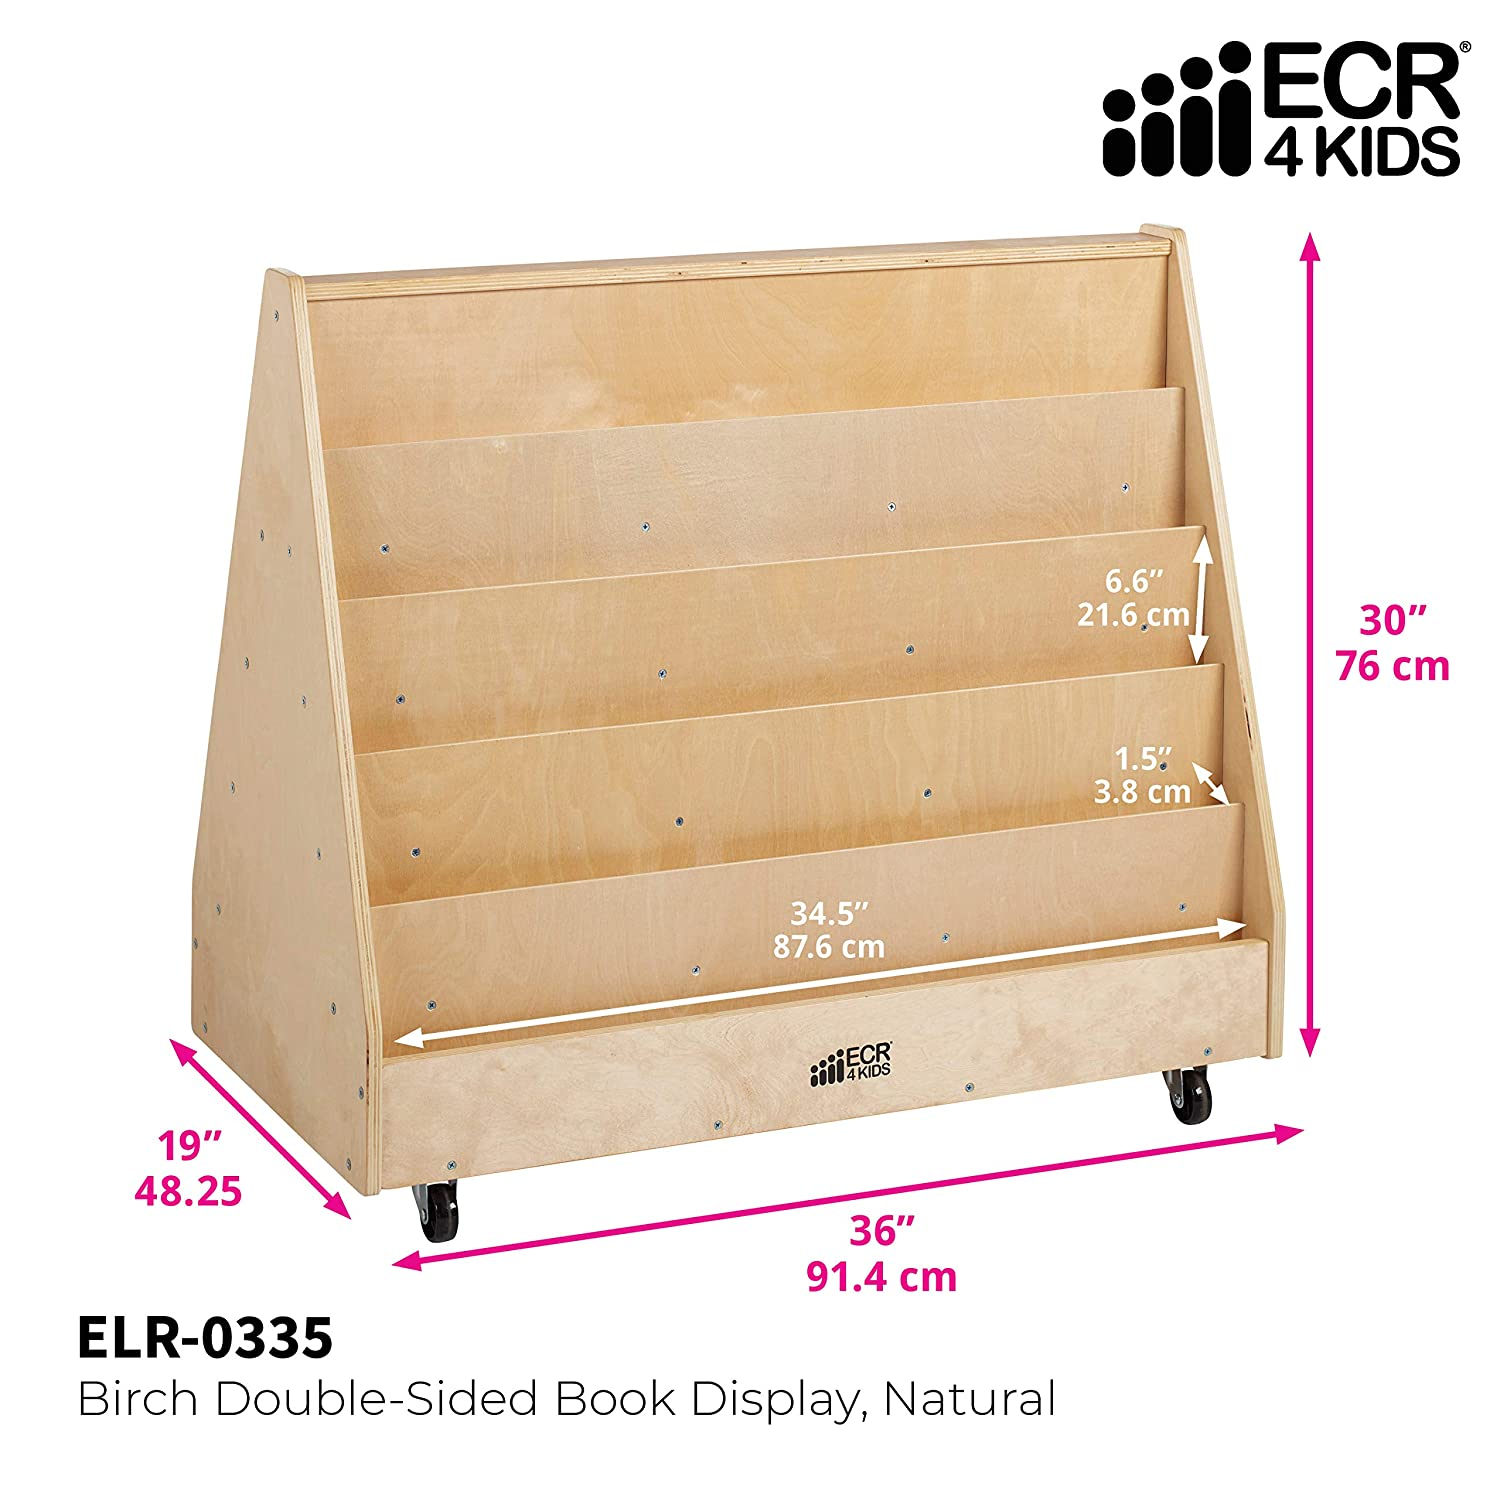 Amazon Com Ecr4kids Elr 0335 Birch Double Sided Book Display Stand Wood Book Shelf Organizer For Kids 10 Shelves Natural Industrial Scientific